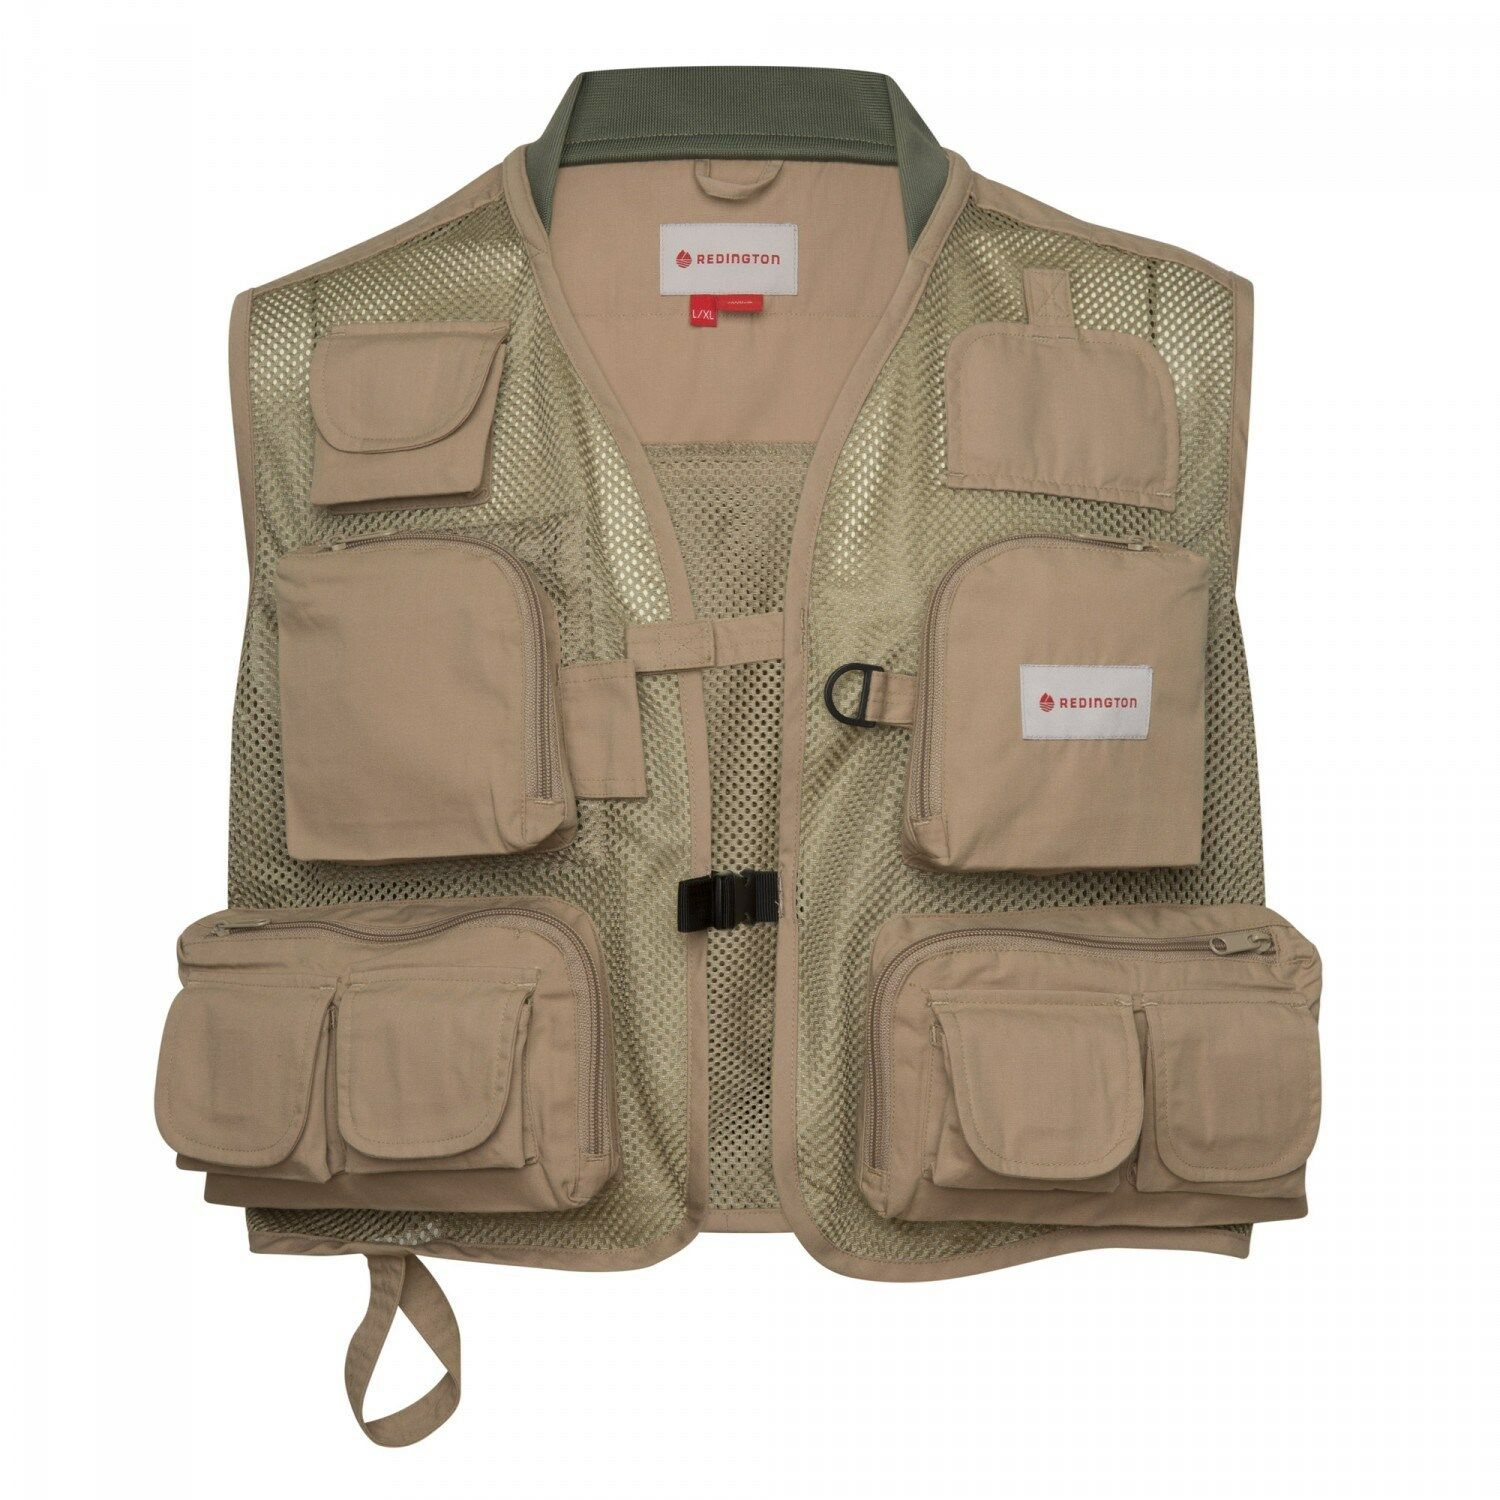 NEW  REDINGTON SM MED CLARK FORK MESH FLY FISHING VEST IN SAGE W  FREE US SHIP  order now lowest prices